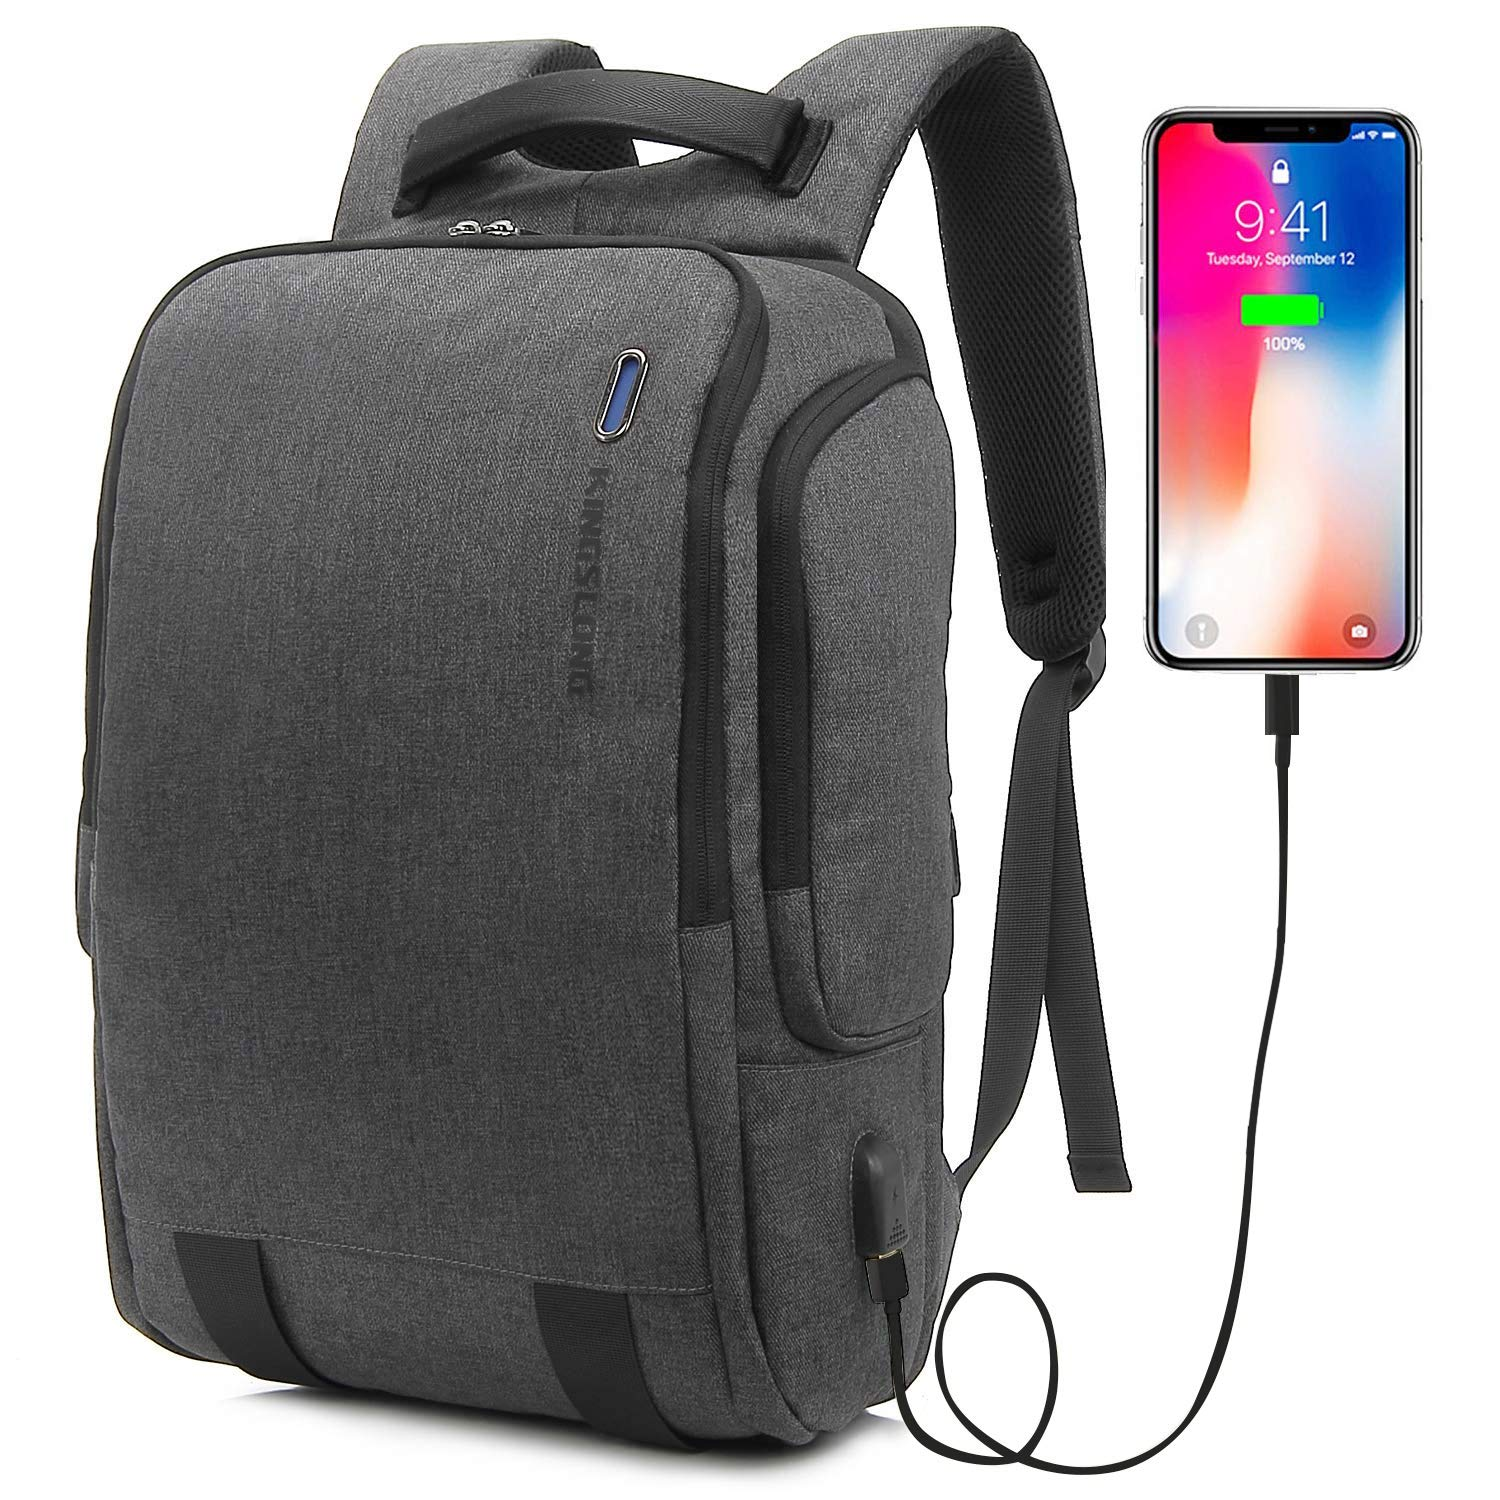 Business Laptop Backpack, KINGSLONG Large Travel Backpack with USB Charging Port Durable Water Resistant 17.3 Inch Computer backpacks for Women Men, Casual Hiking Travel Daypack Gray